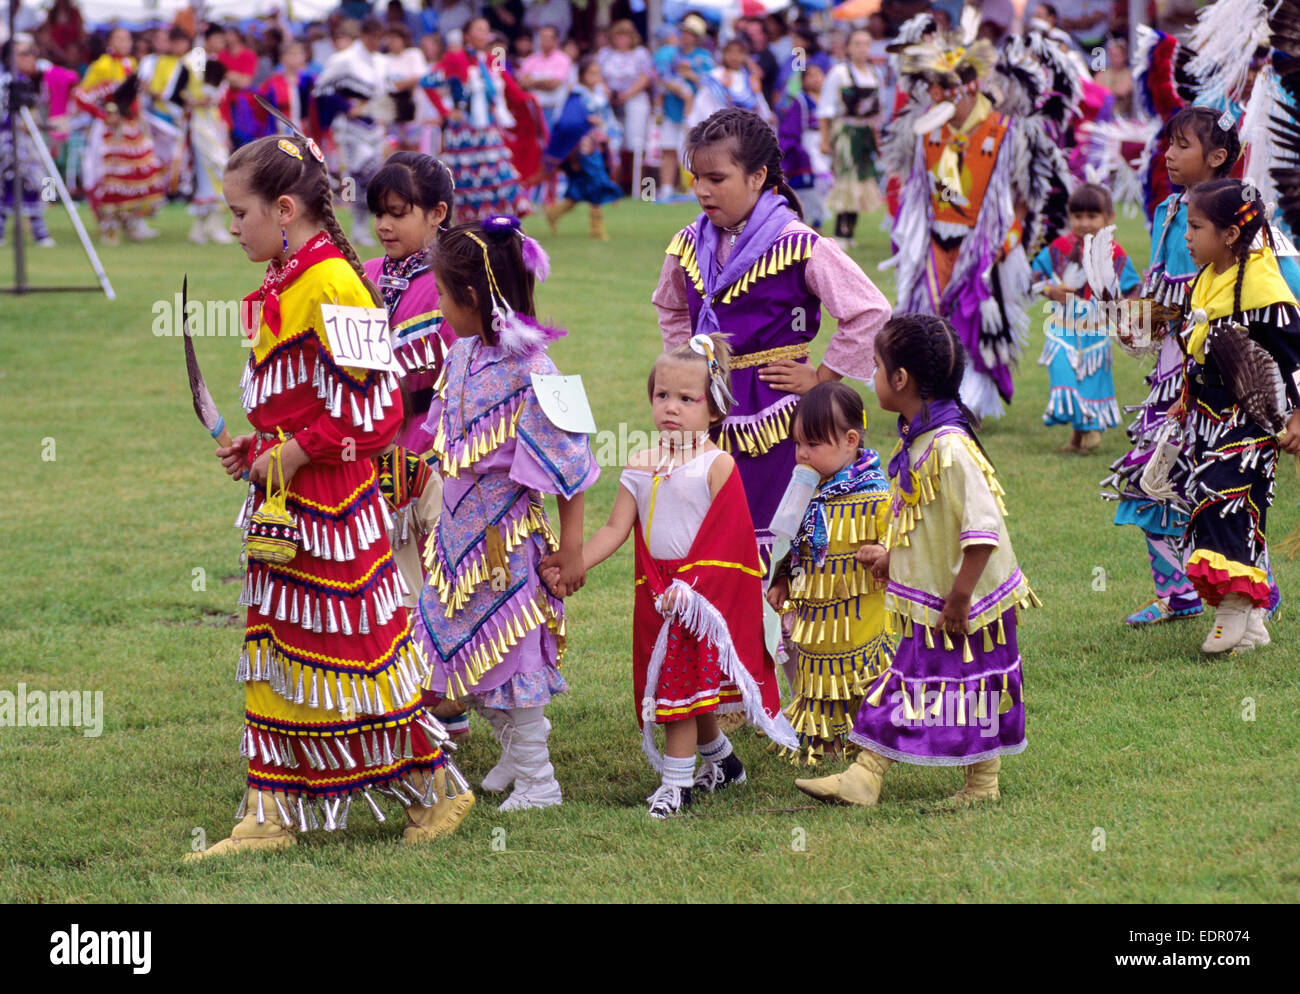 Young girls in jingle dresses participating in a pow wow held on Manitoulin Island, Ontario, Canada. - Stock Image